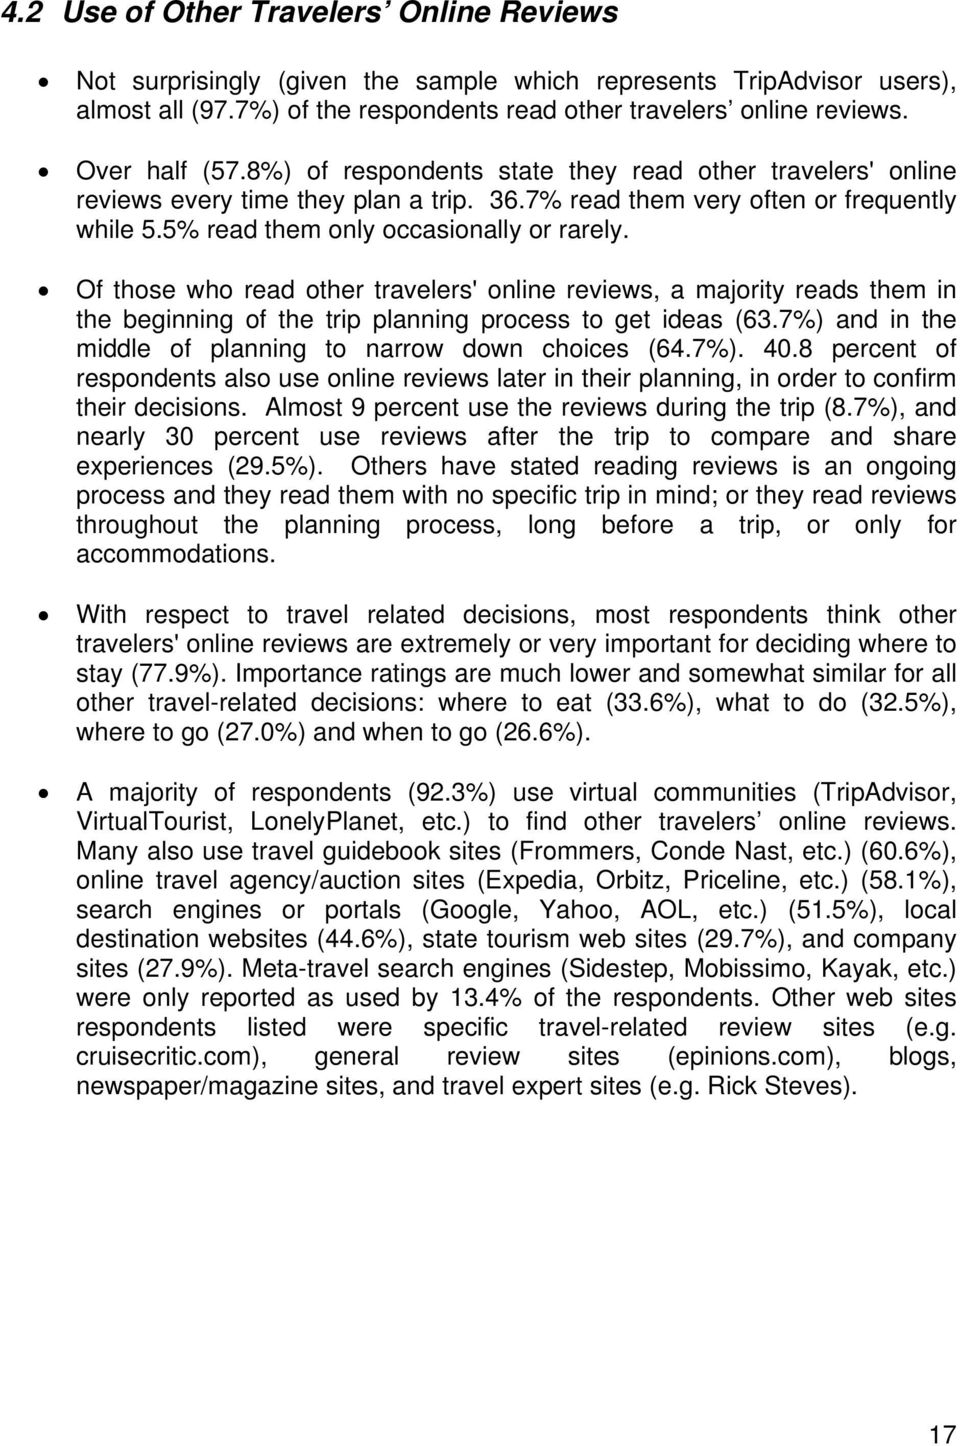 Of those who read other travelers' online reviews, a majority reads them in the beginning of the trip planning process to get ideas (63.7%) and in the middle of planning to narrow down choices (64.